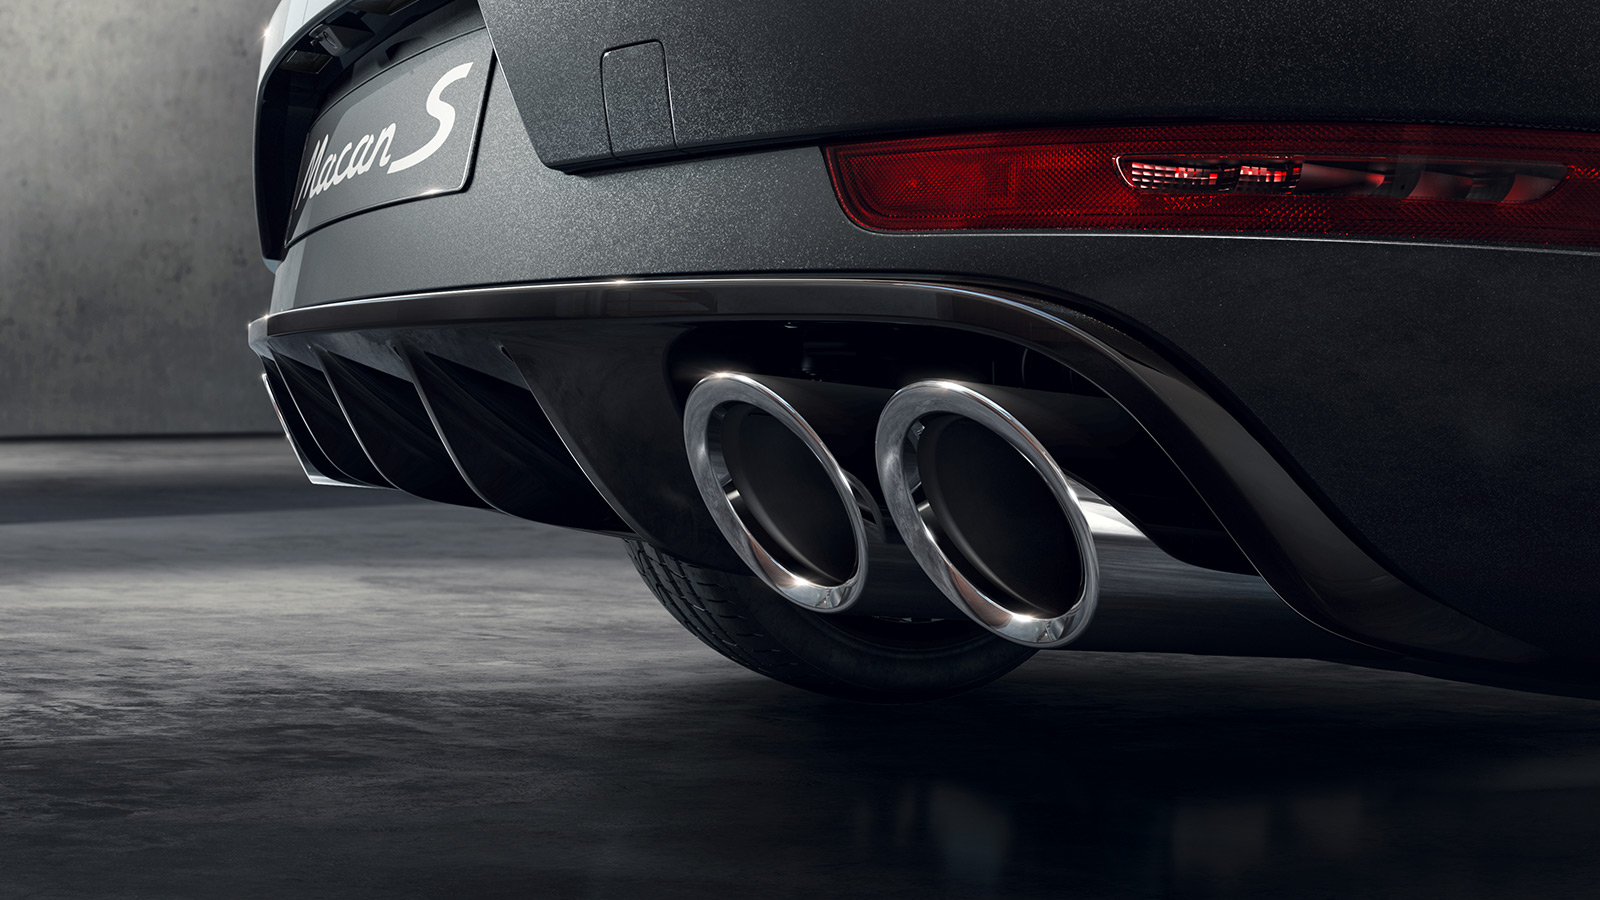 Porsche - Sports exhaust systems & sports tailpipes